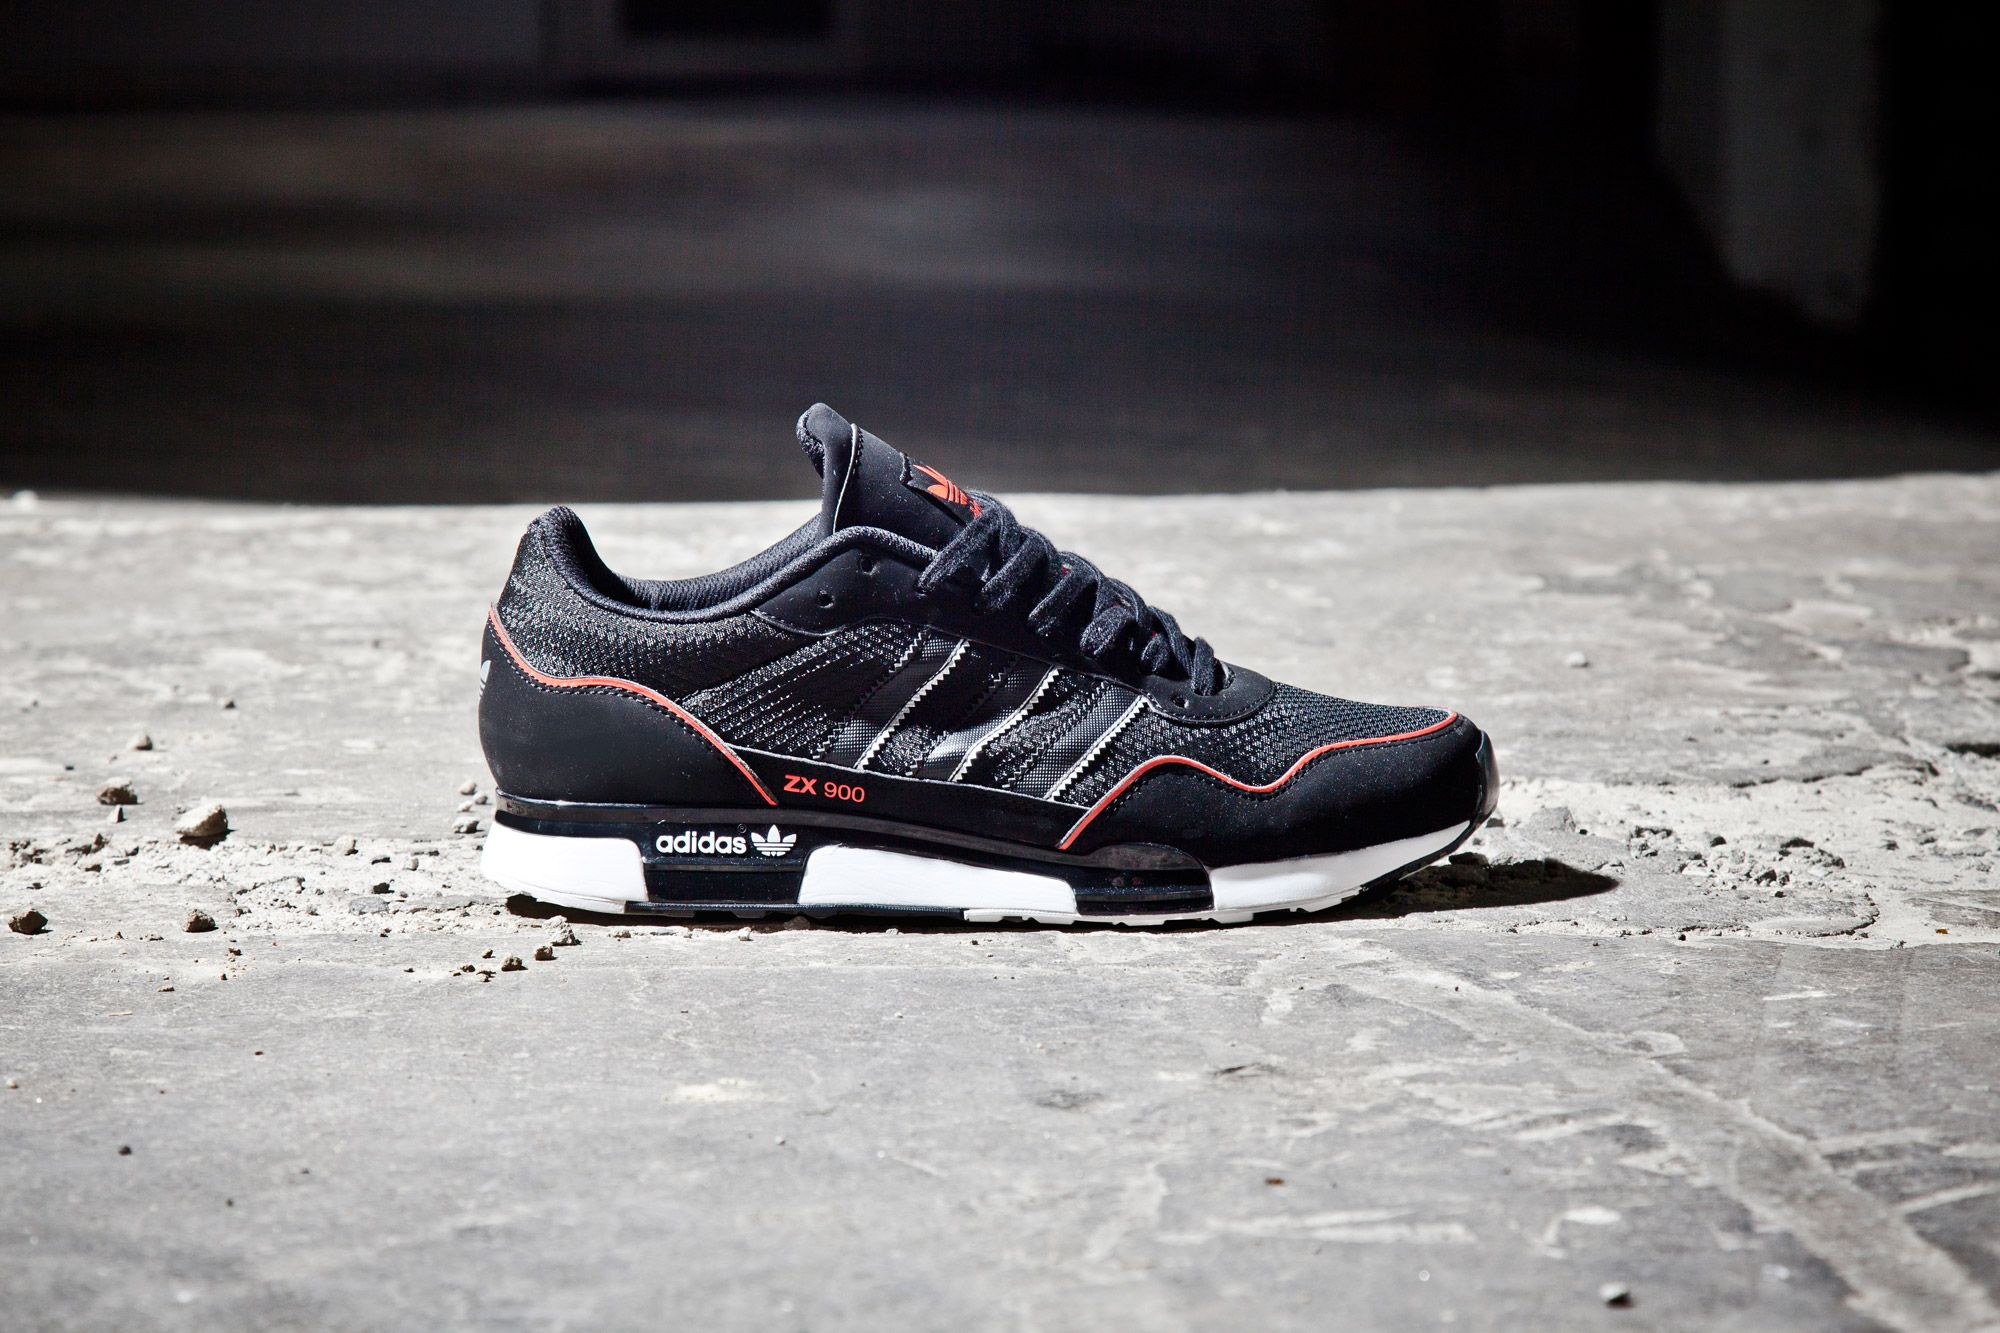 Adidas Fl Zx900 Flash 3